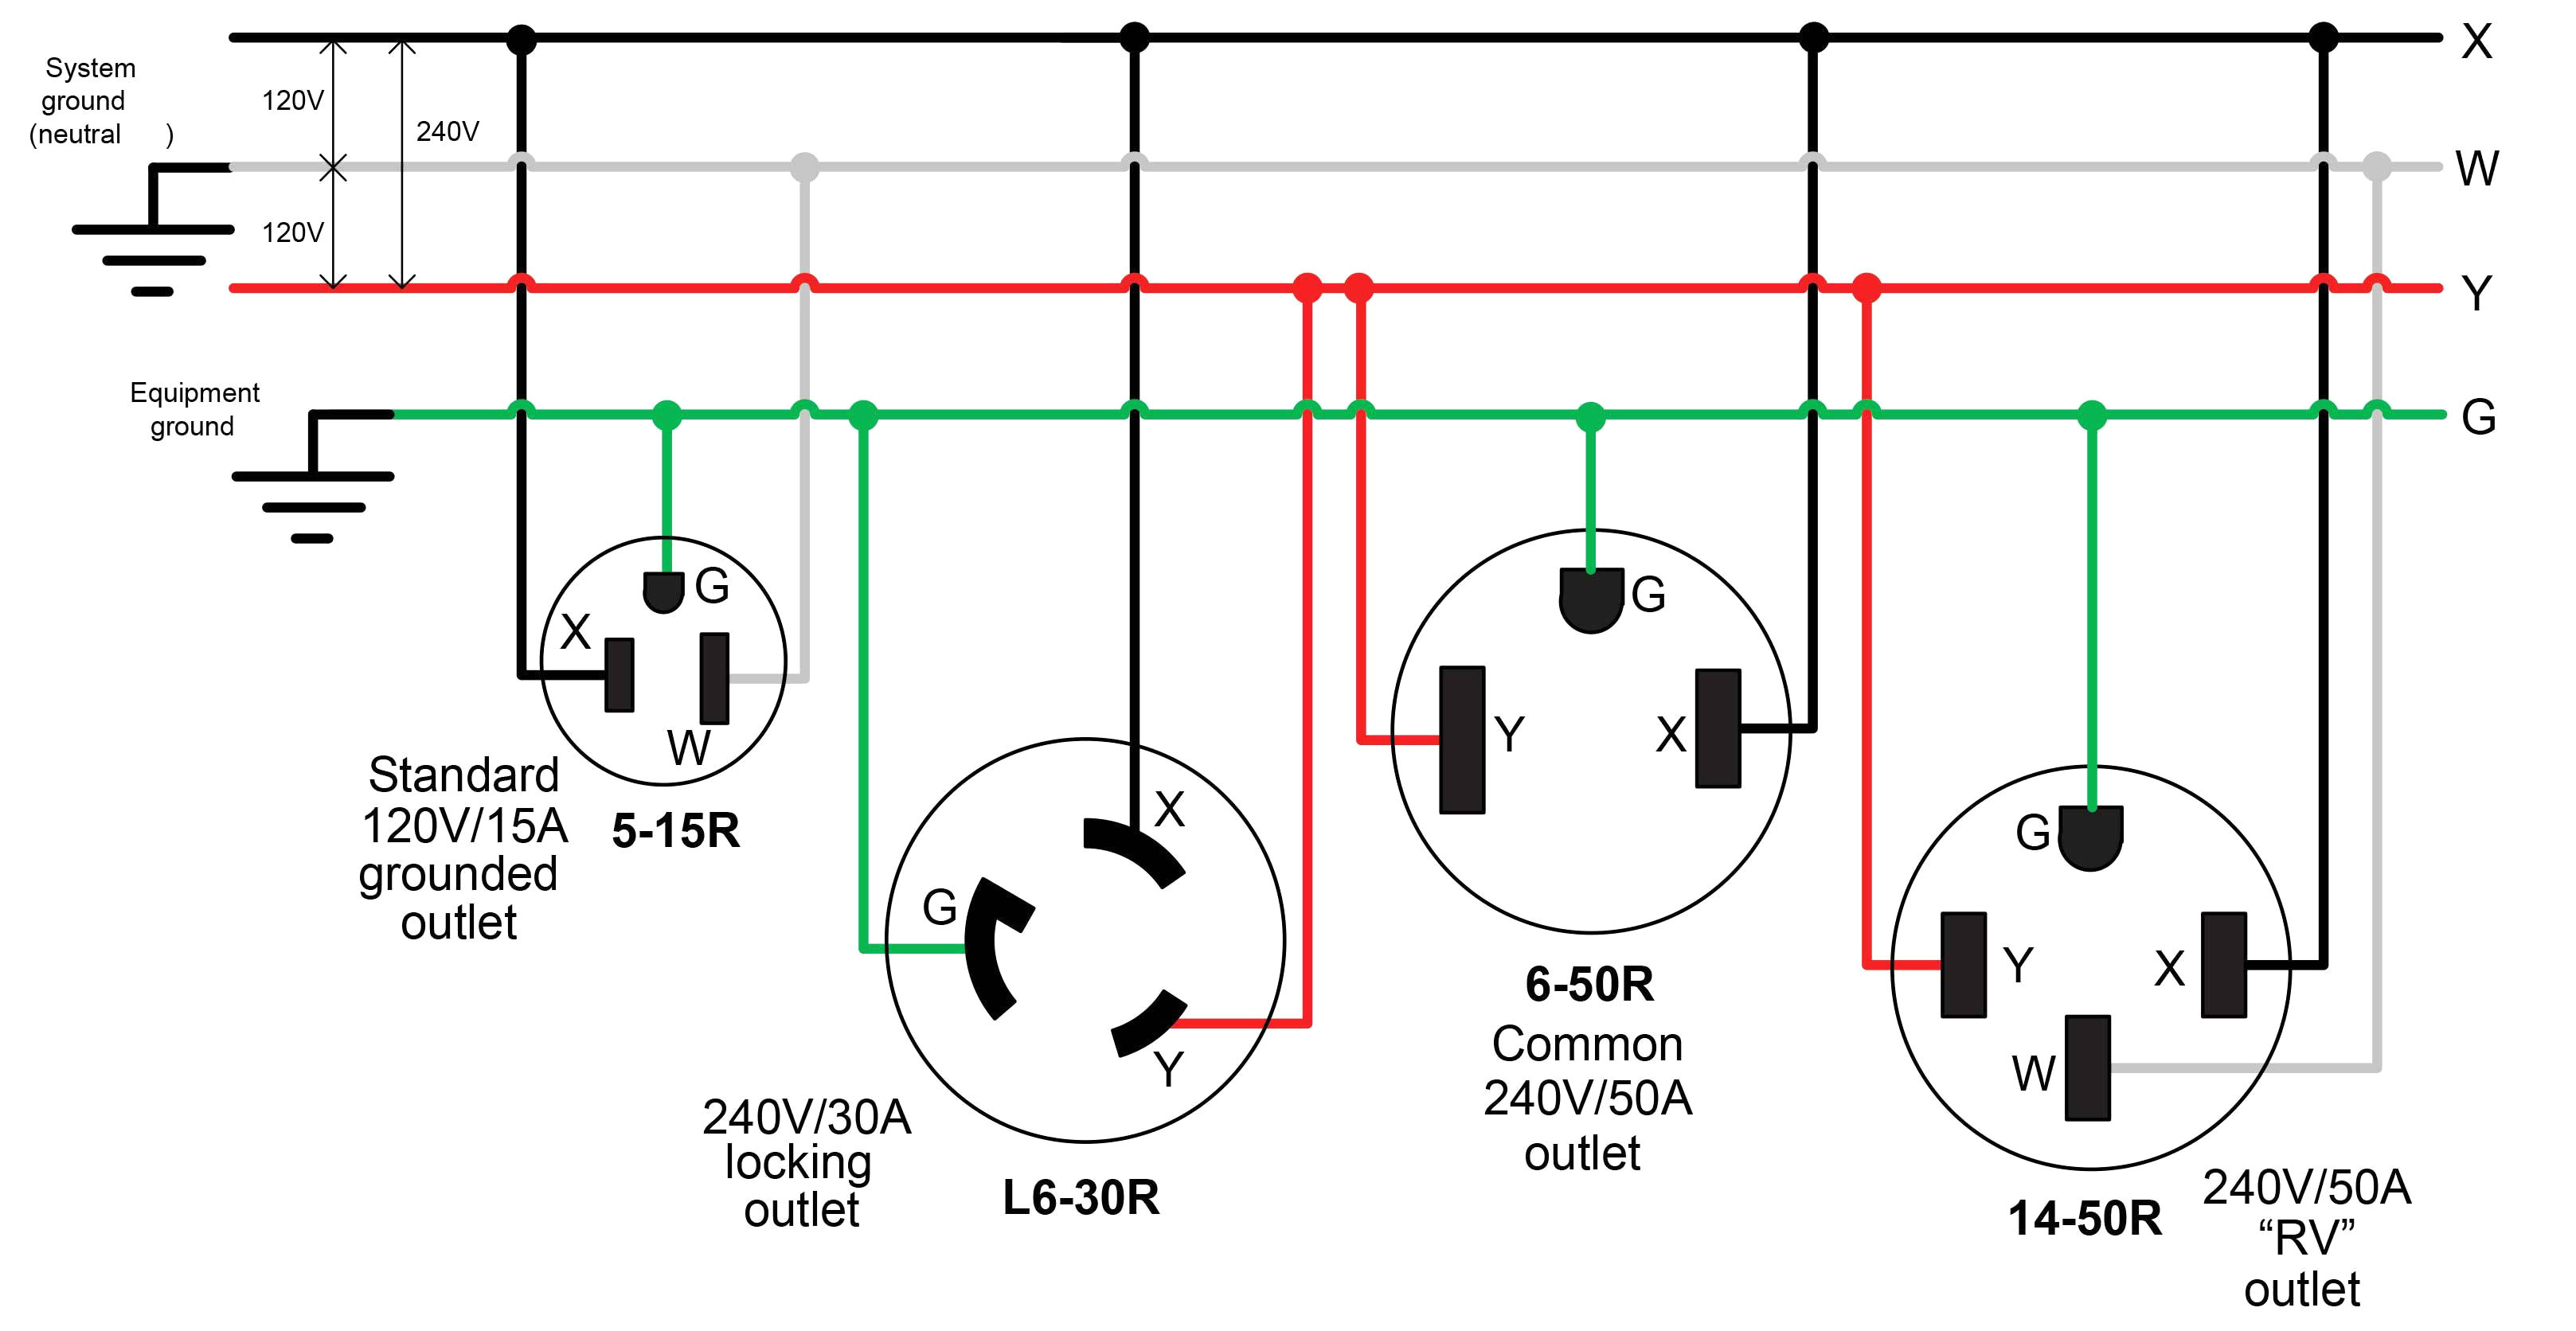 20 amp plug wiring diagram Collection-Wiring Diagram 30 Amp Relay Best 30 Amp Twist Lock Plug Wiring Diagram Coachedby Me Fancy Rv 17-b